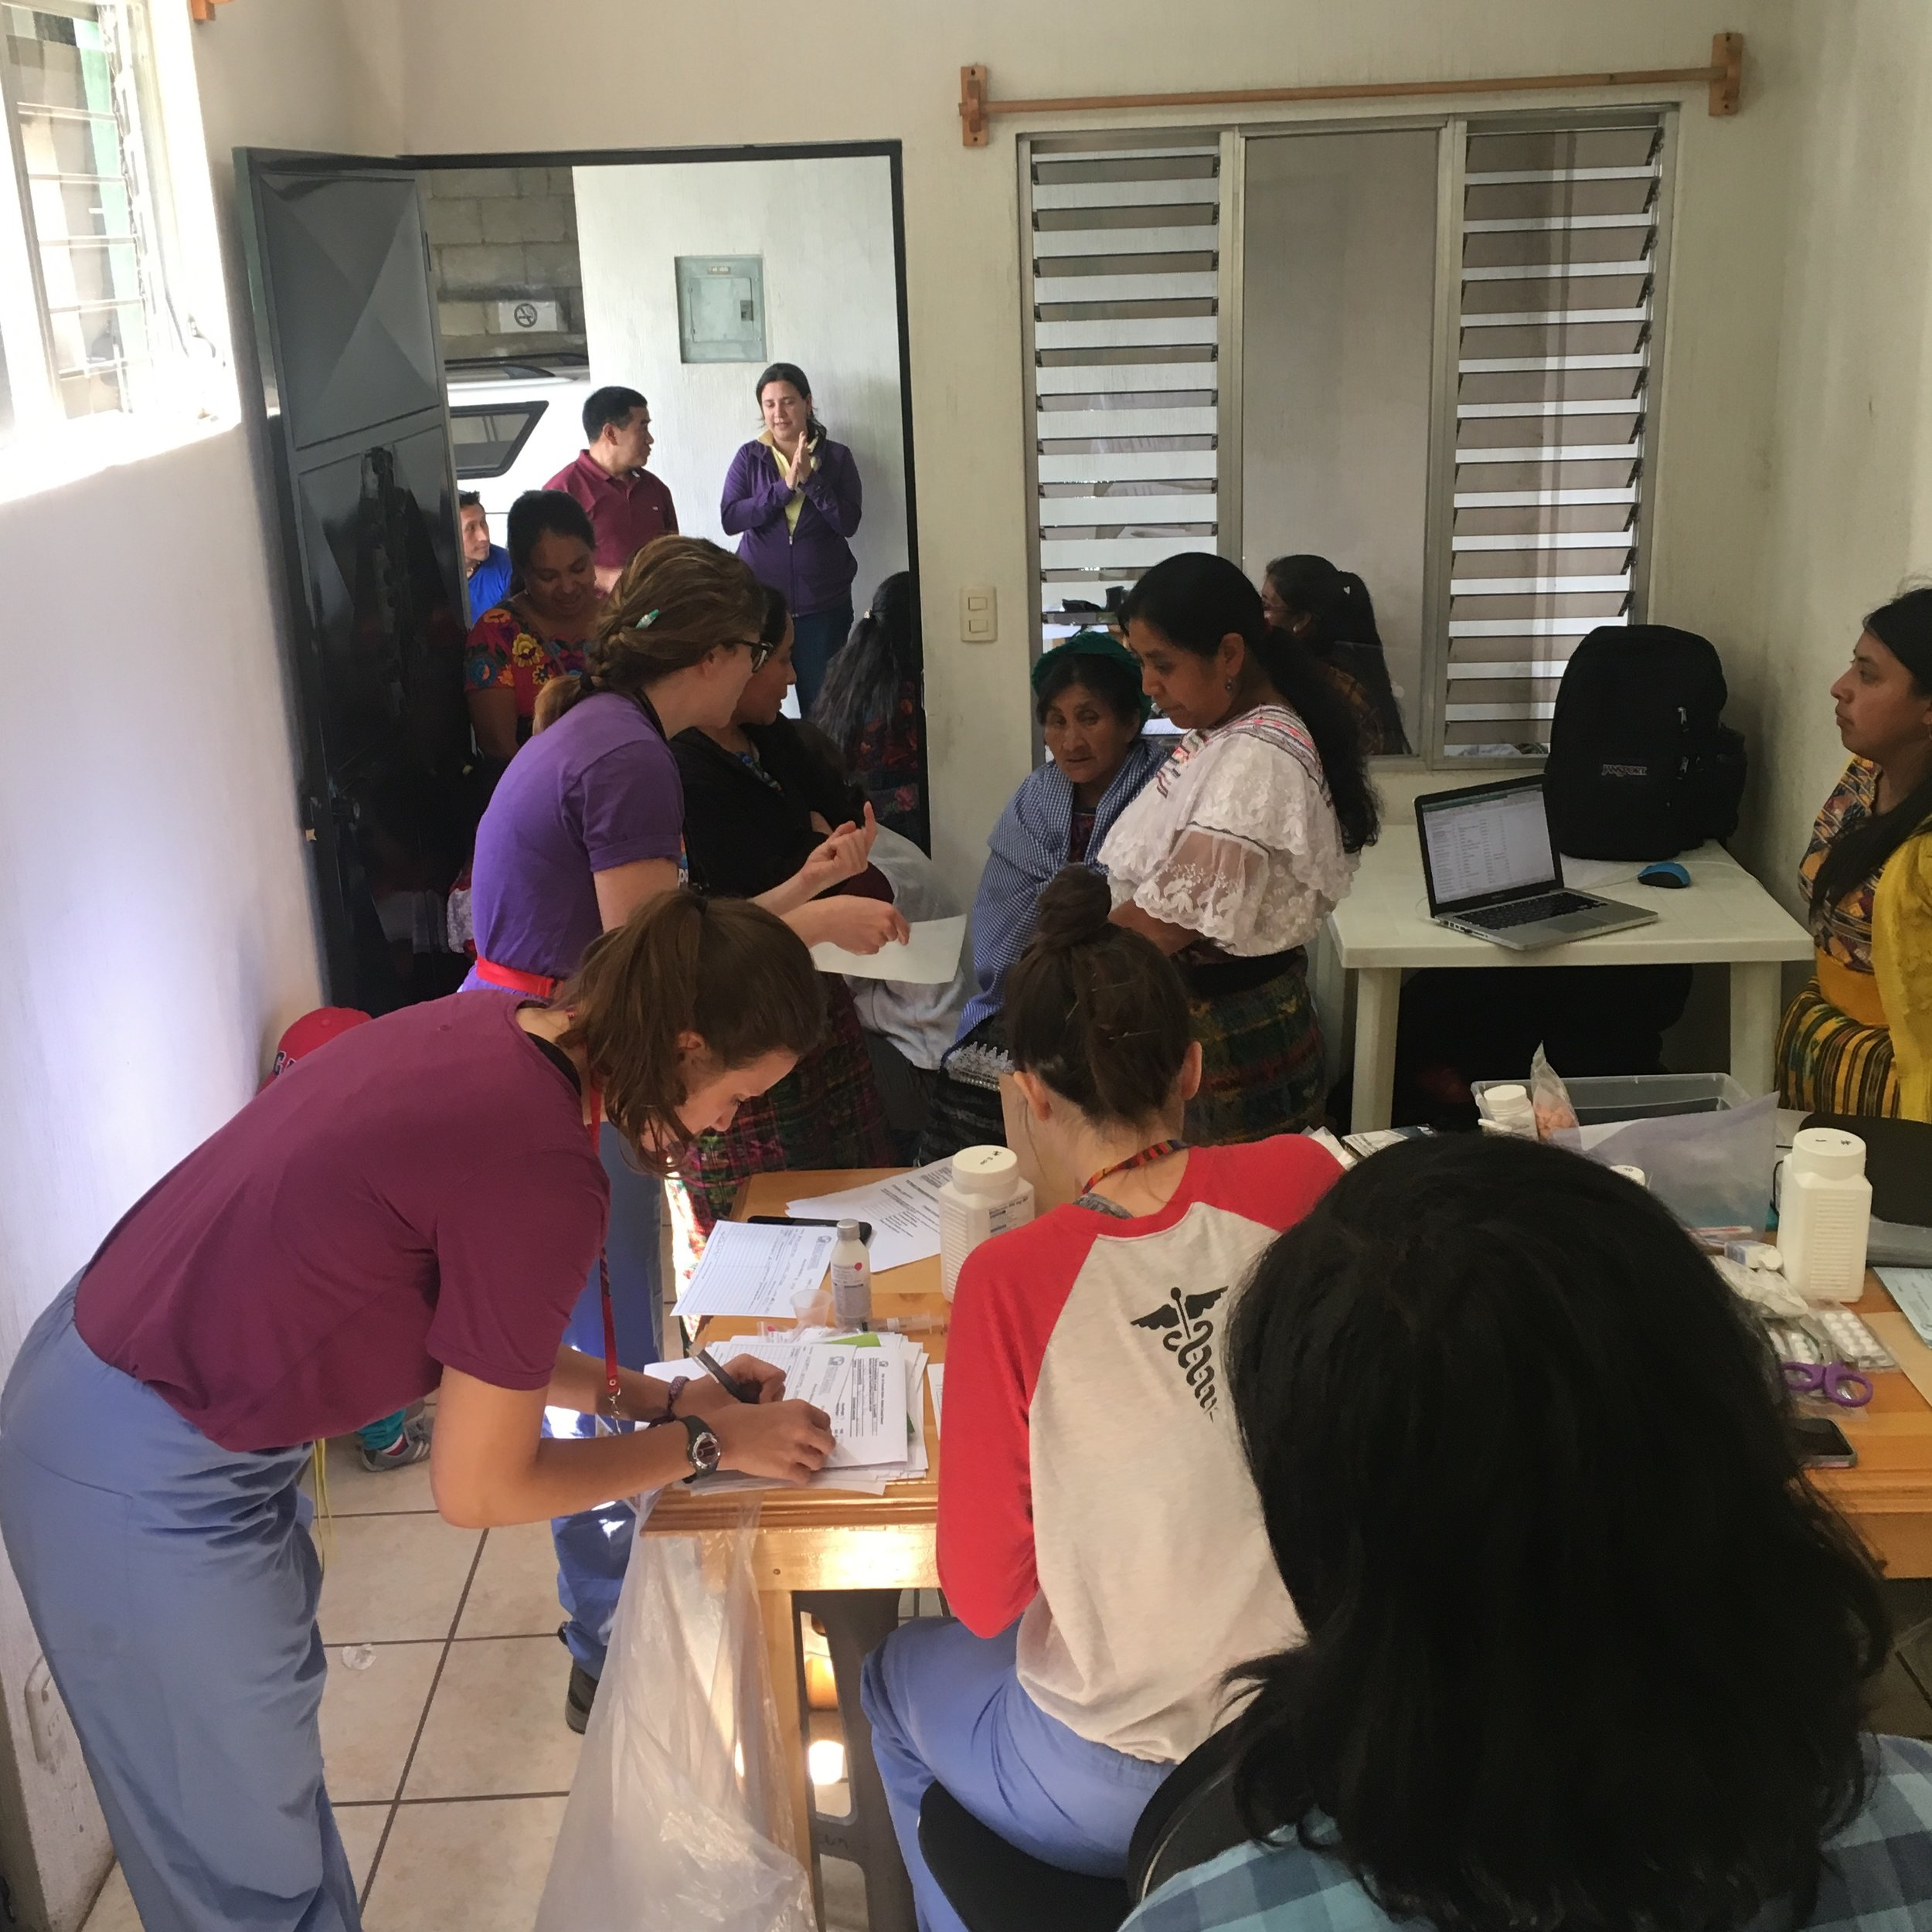 For the second week we traveled to the city of Tecpan which served as our base for daily clinics in more remote and outlying communities.